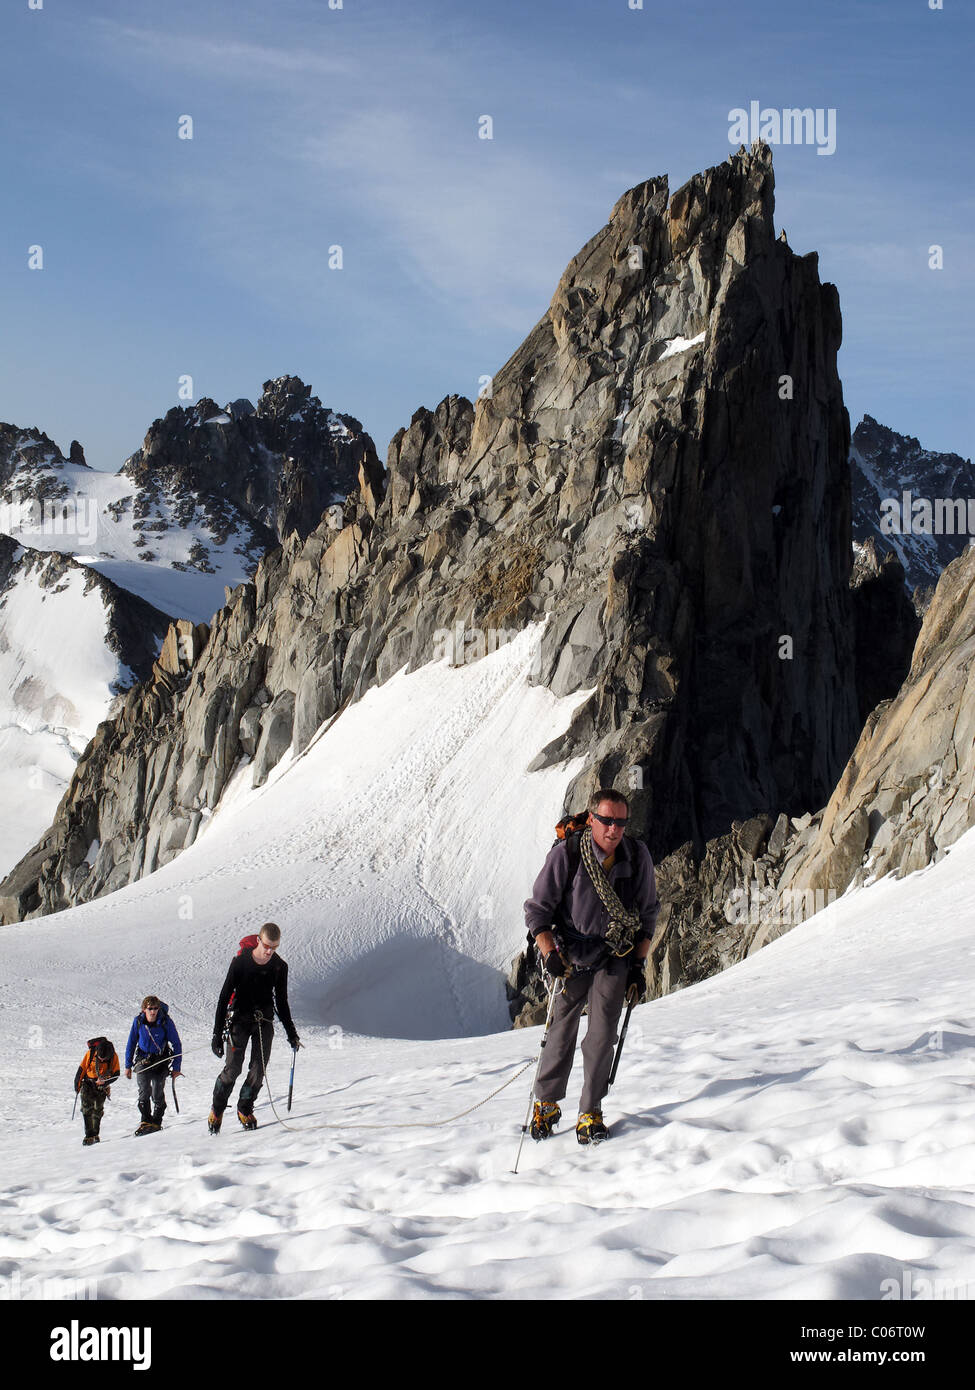 Alpine climbers on the Trient glacier approaching the Aiguille du Tour - Stock Image